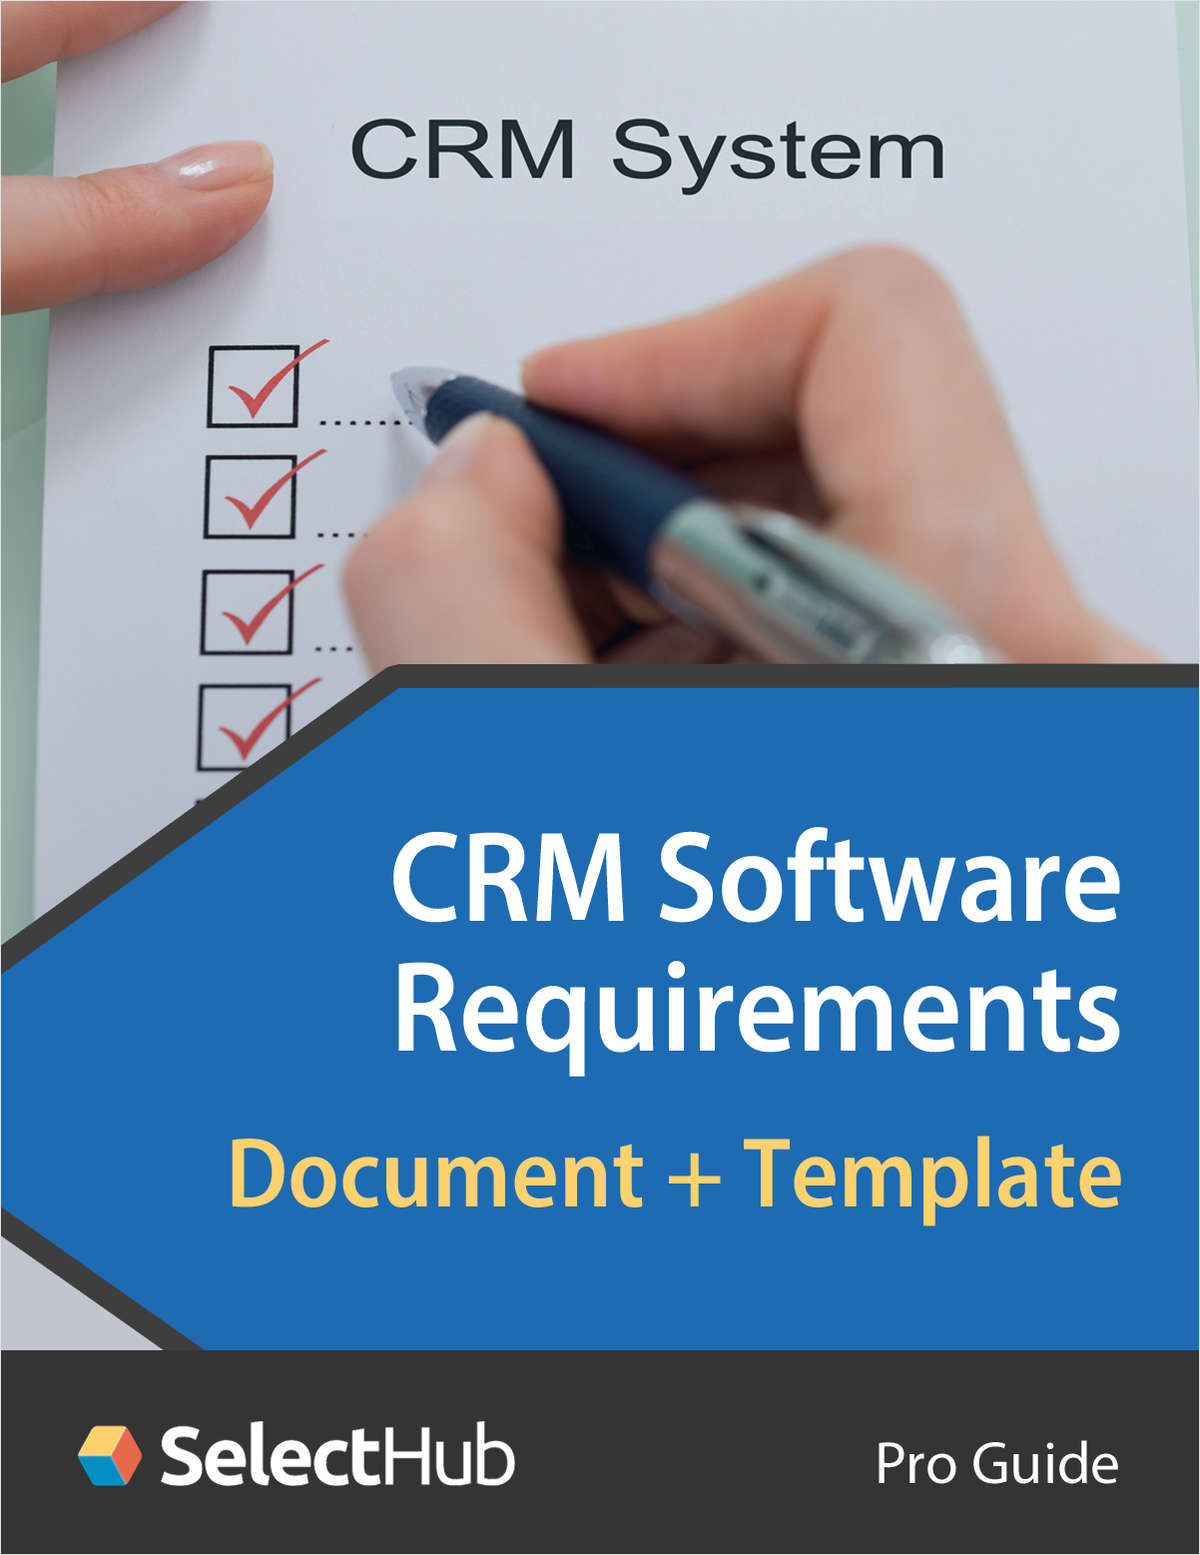 CRM Software Requirements Document & Template